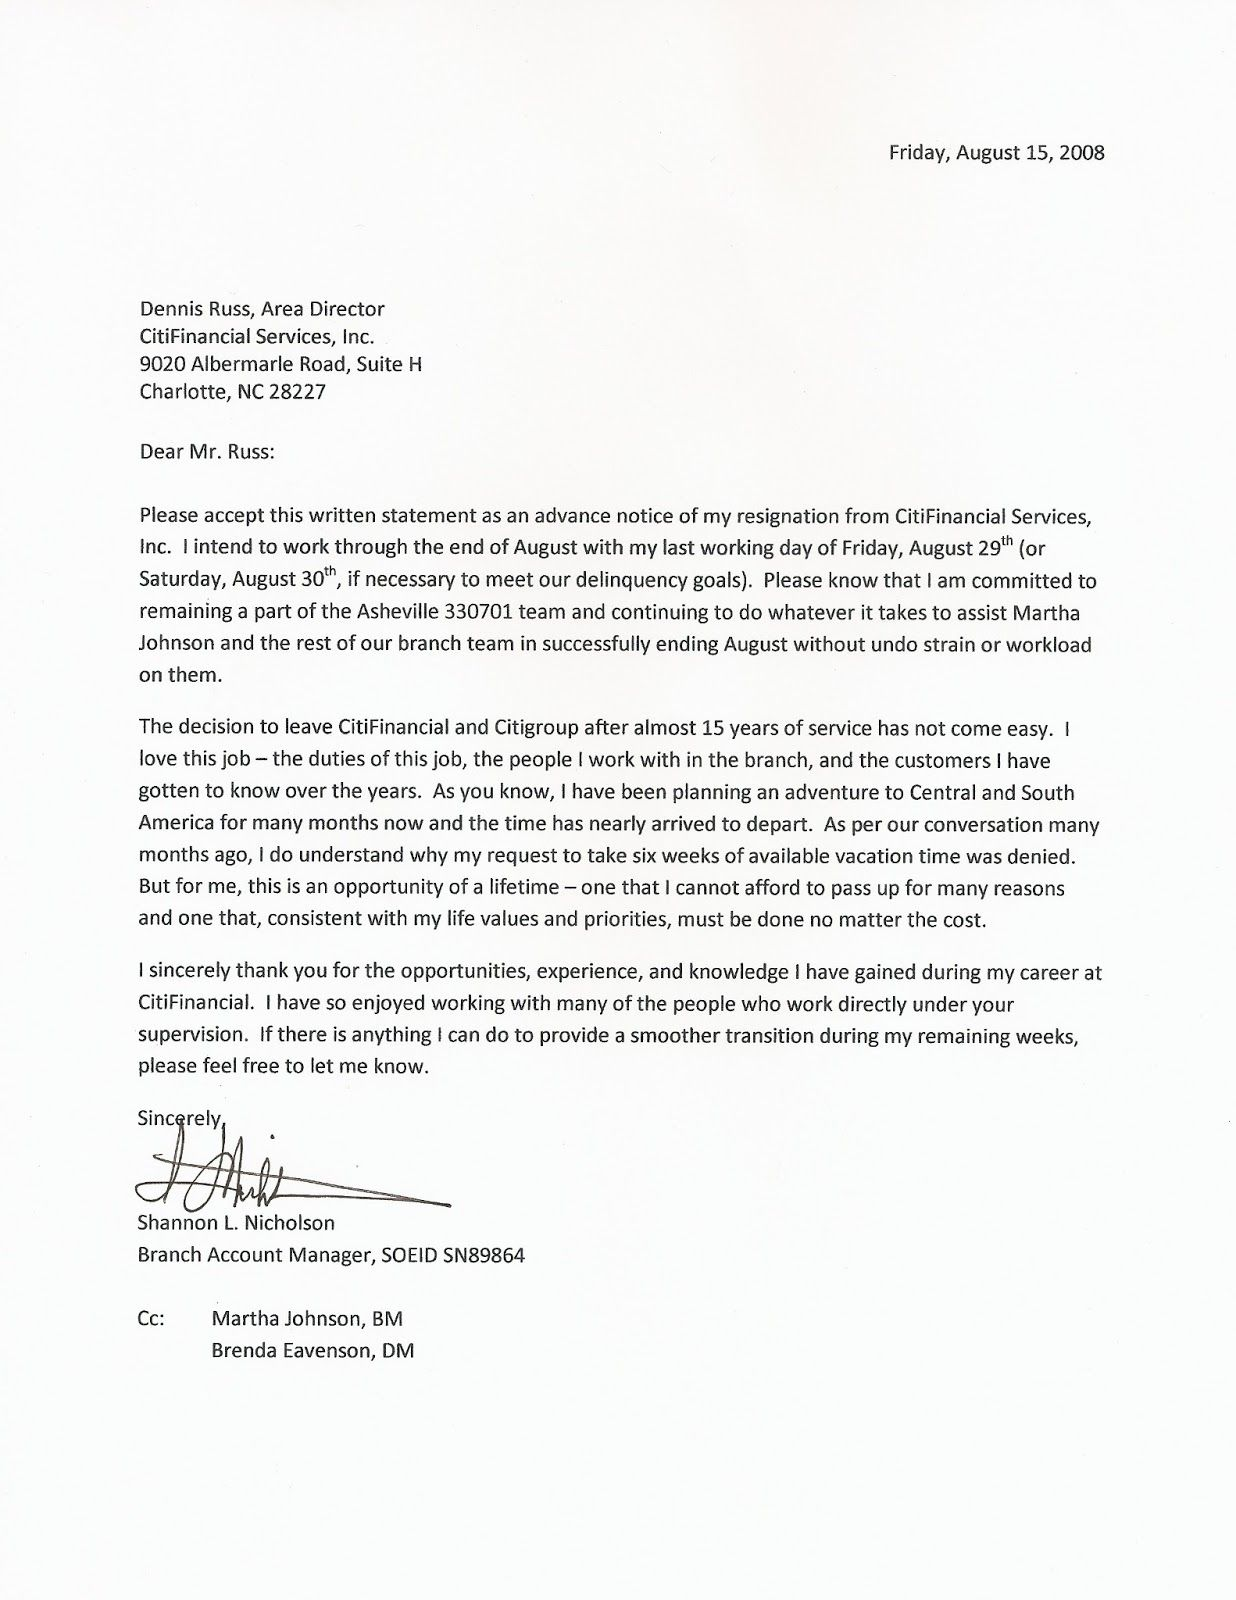 Example of formal letter solarfm tips for writing a letter of recommendation thecheapjerseys Image collections